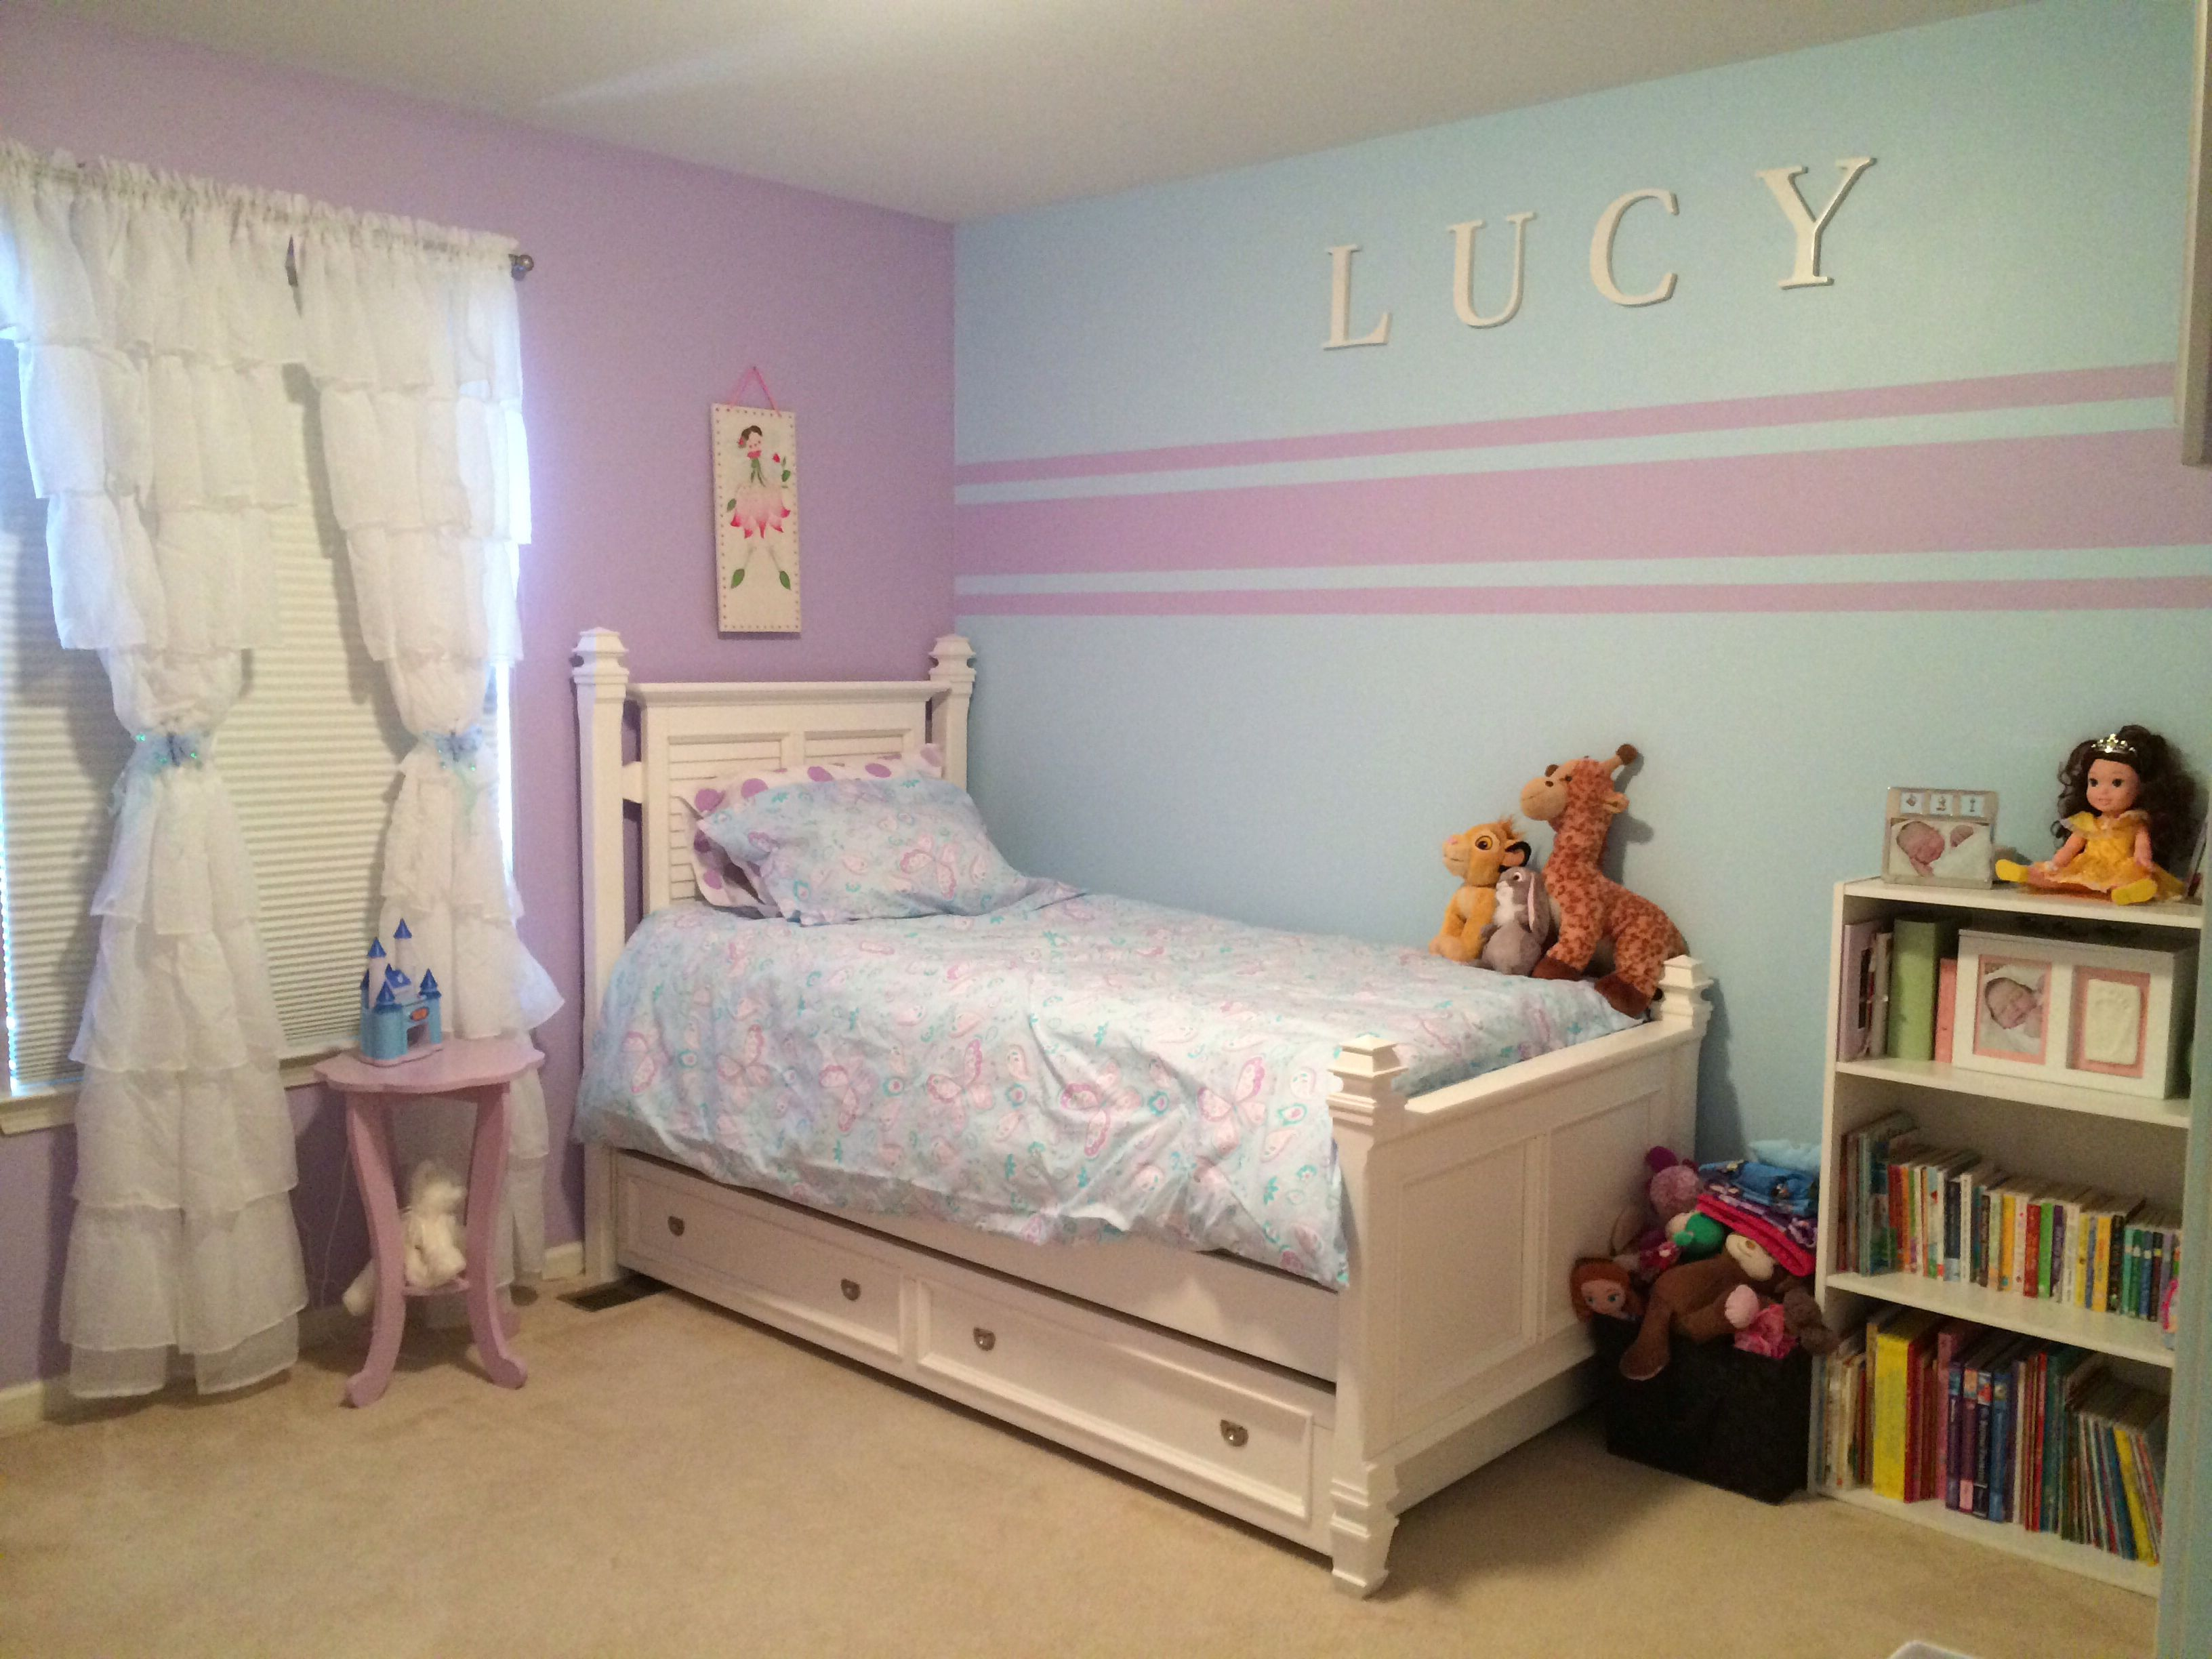 Accent Wall Stripes For Little Girl Room Kristin Duvet Set Pottery Barn Kids Blue Paint Soar From S Girls Room Colors Girls Room Paint Girls Bedroom Paint